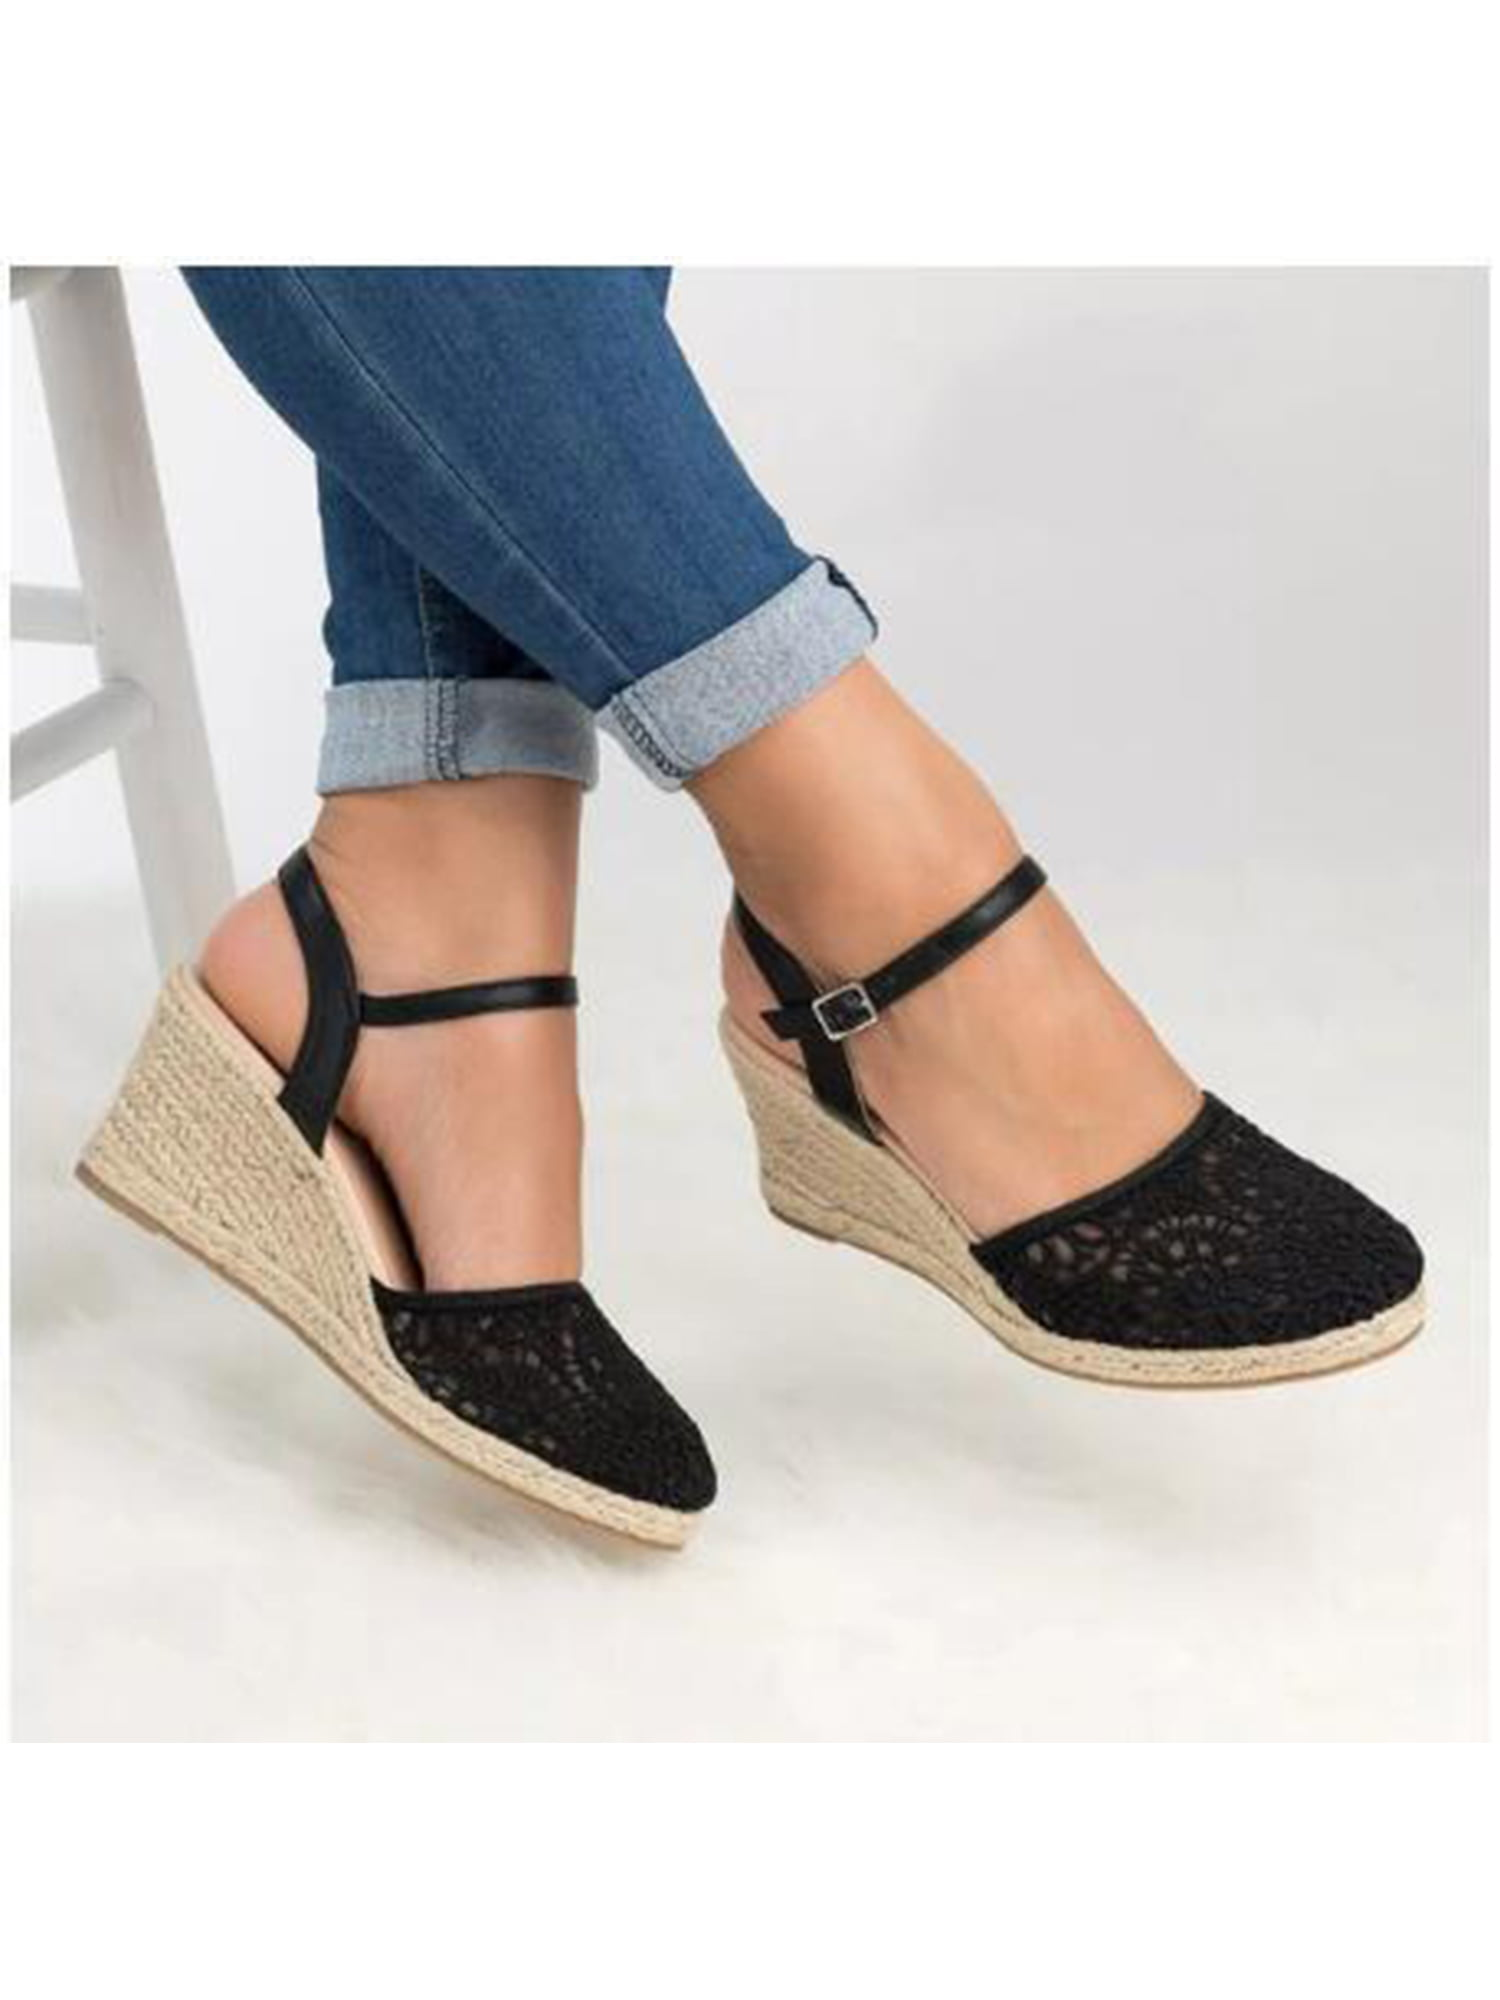 Details about  /Women Solid Colour Buckle Starp Increased Non Slip Casual Wedges Sandals